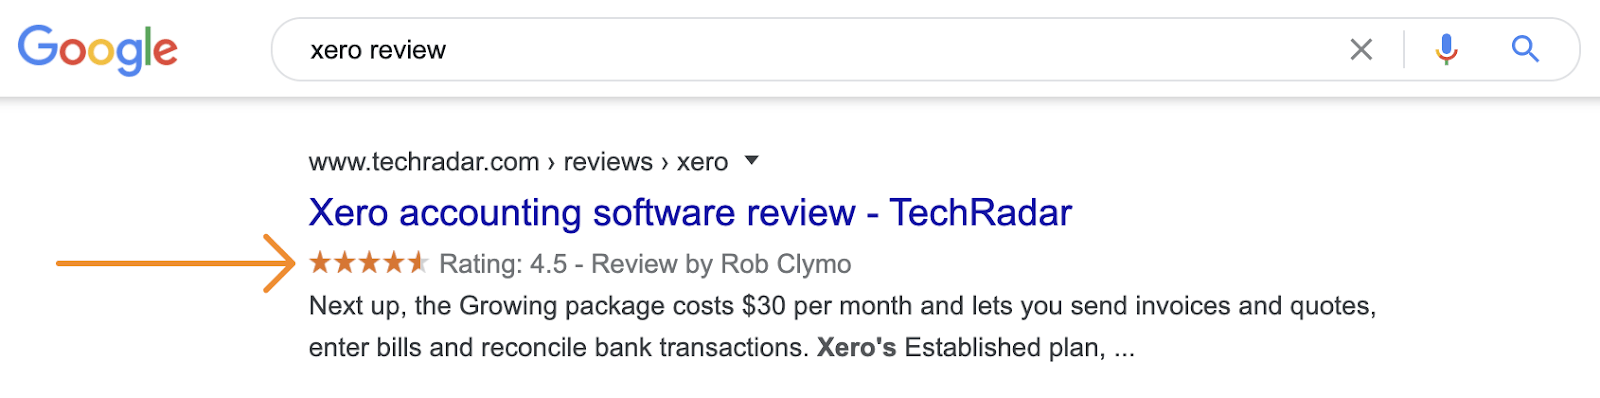 15 xero review rich snippets